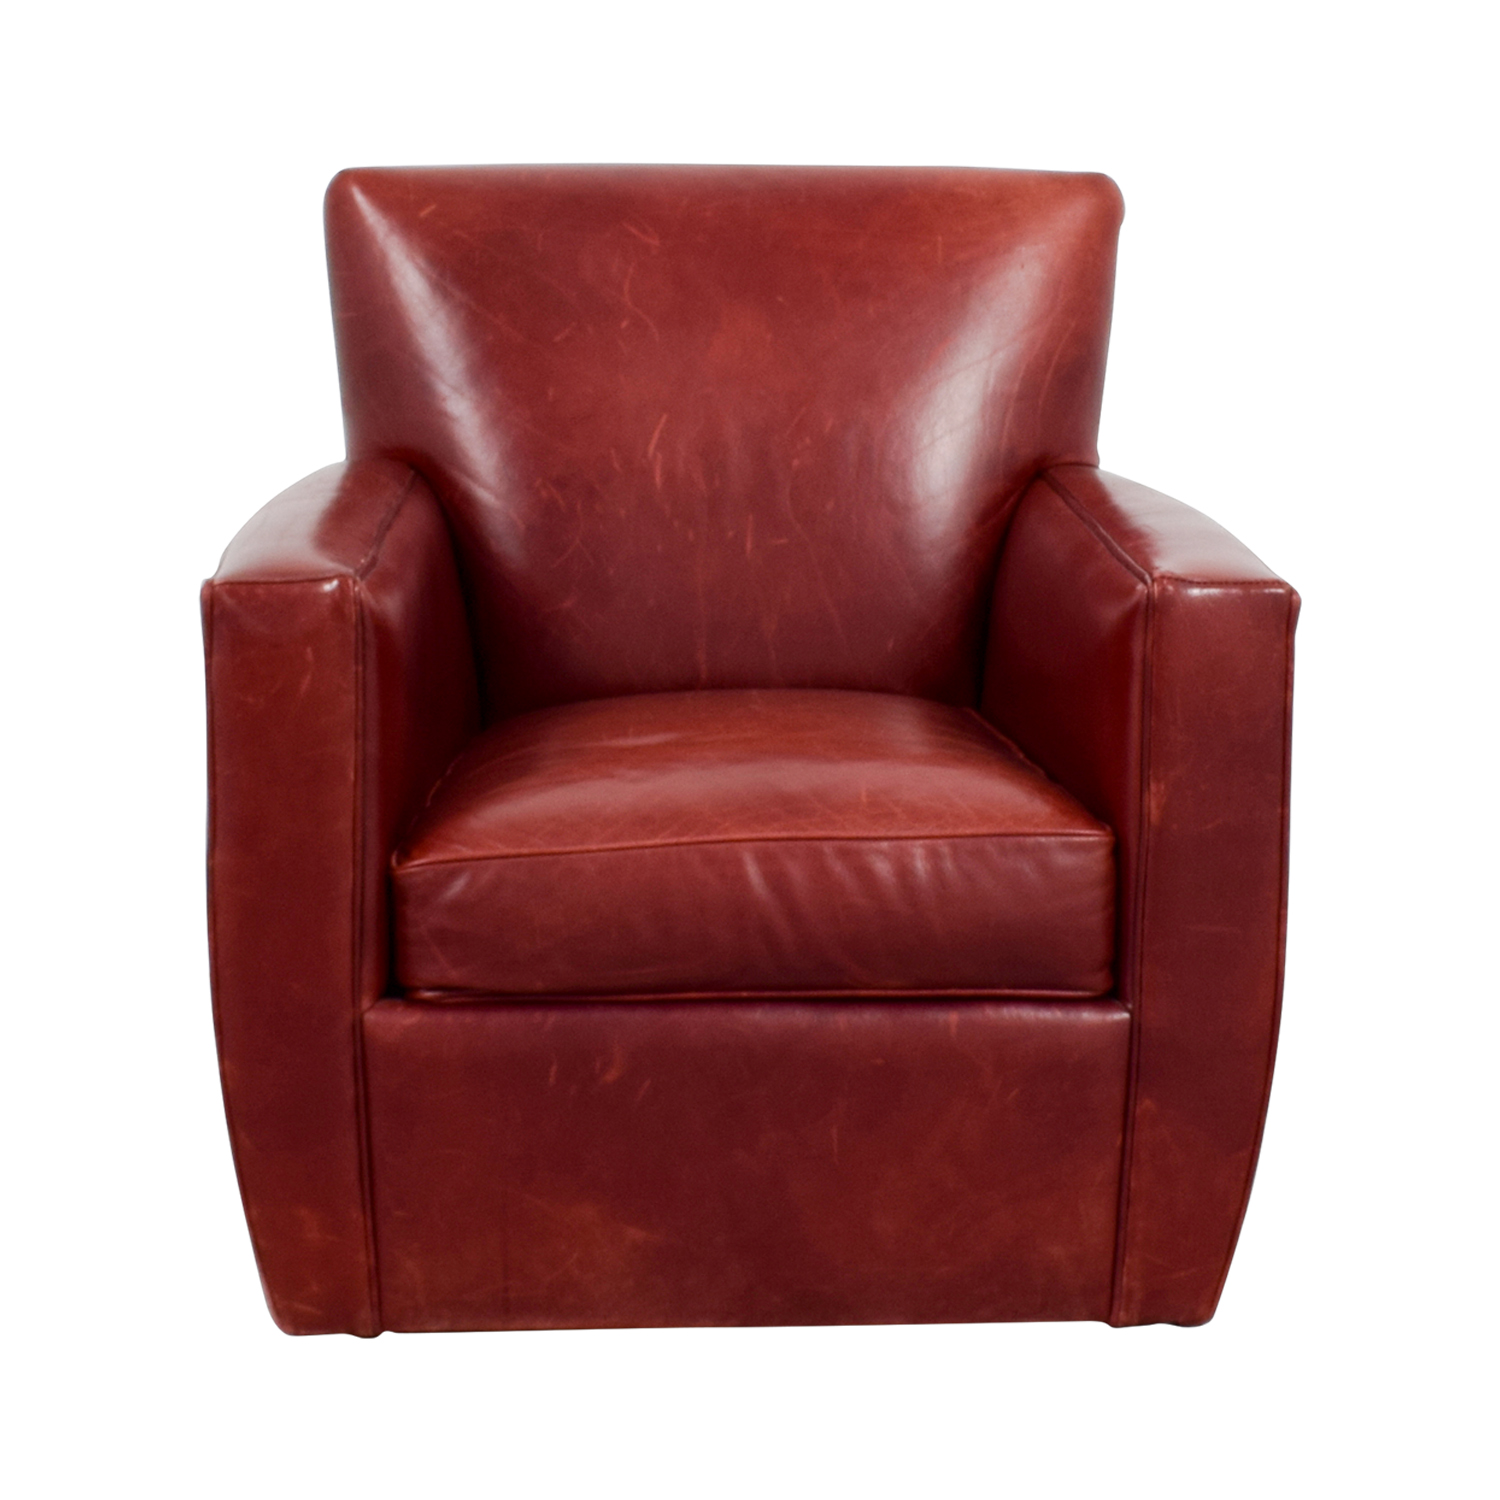 Strange 79 Off Crate Barrel Crate Barrel Leather Swivel Chair Chairs Unemploymentrelief Wooden Chair Designs For Living Room Unemploymentrelieforg